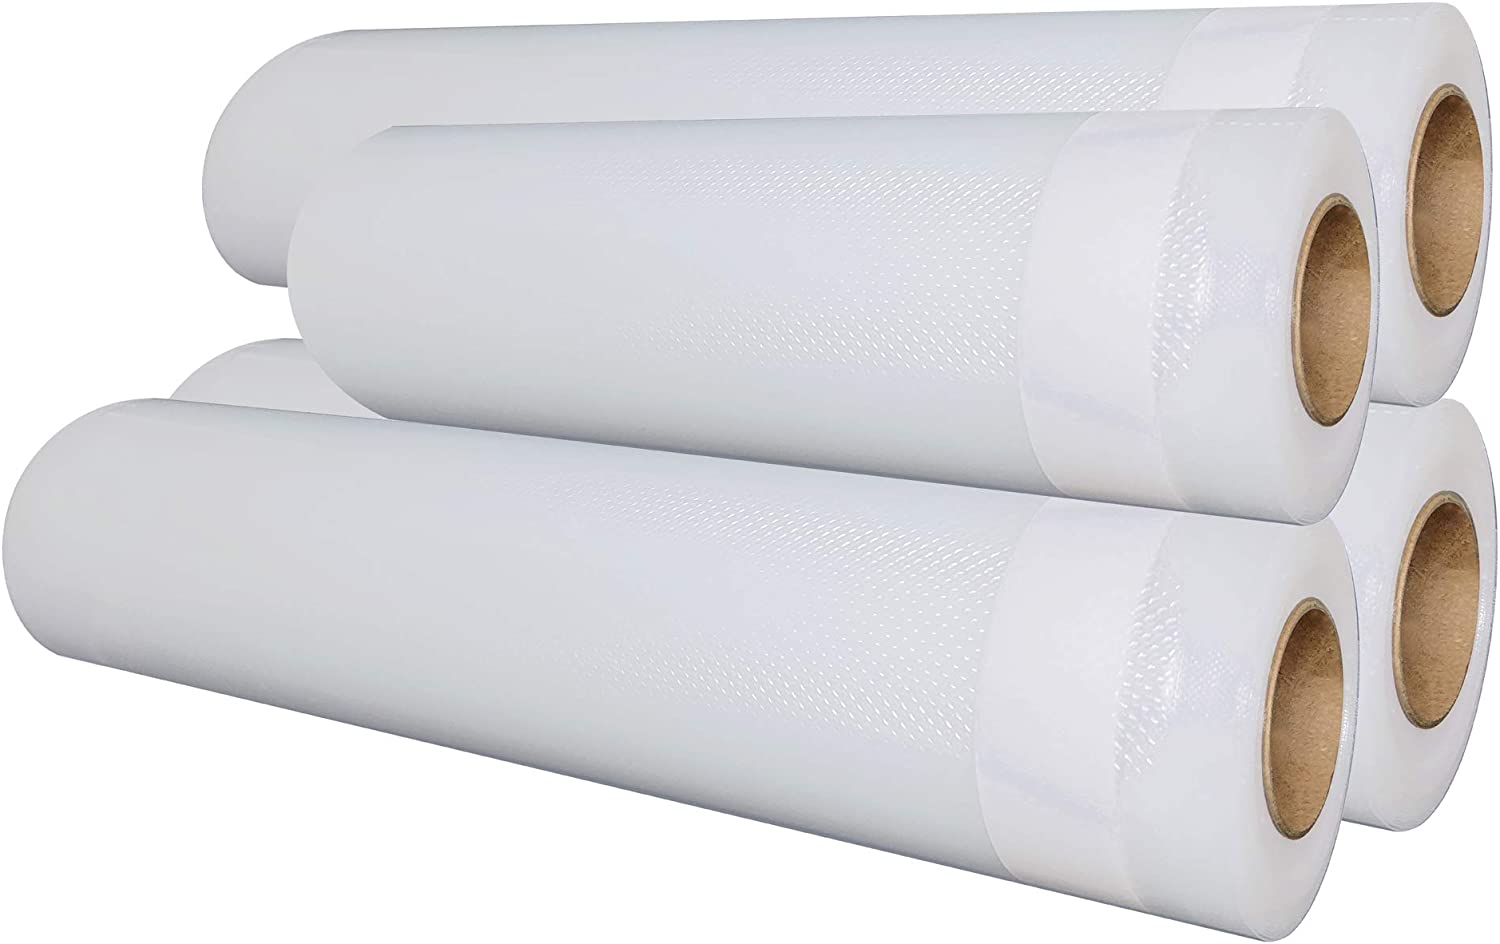 "Value 4 Pack Vacuum Sealer Bag Rolls 11"" x 50' (3 Rolls) and 8"" x 50' (1 Roll), Total 200 Feet"